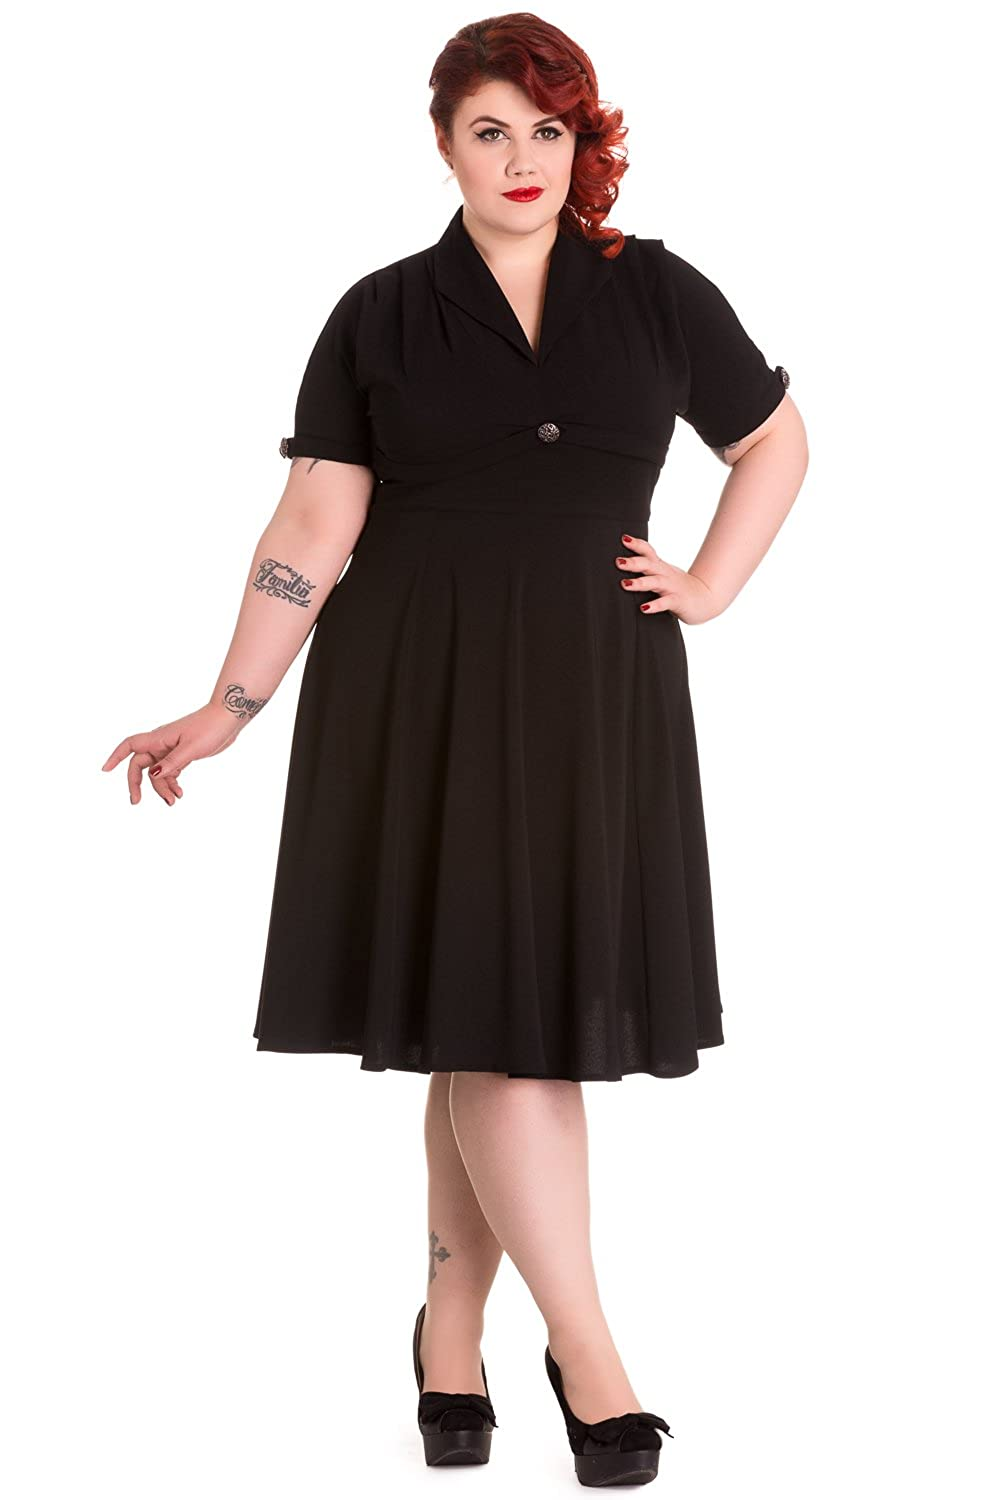 Plus size pinup dresses black